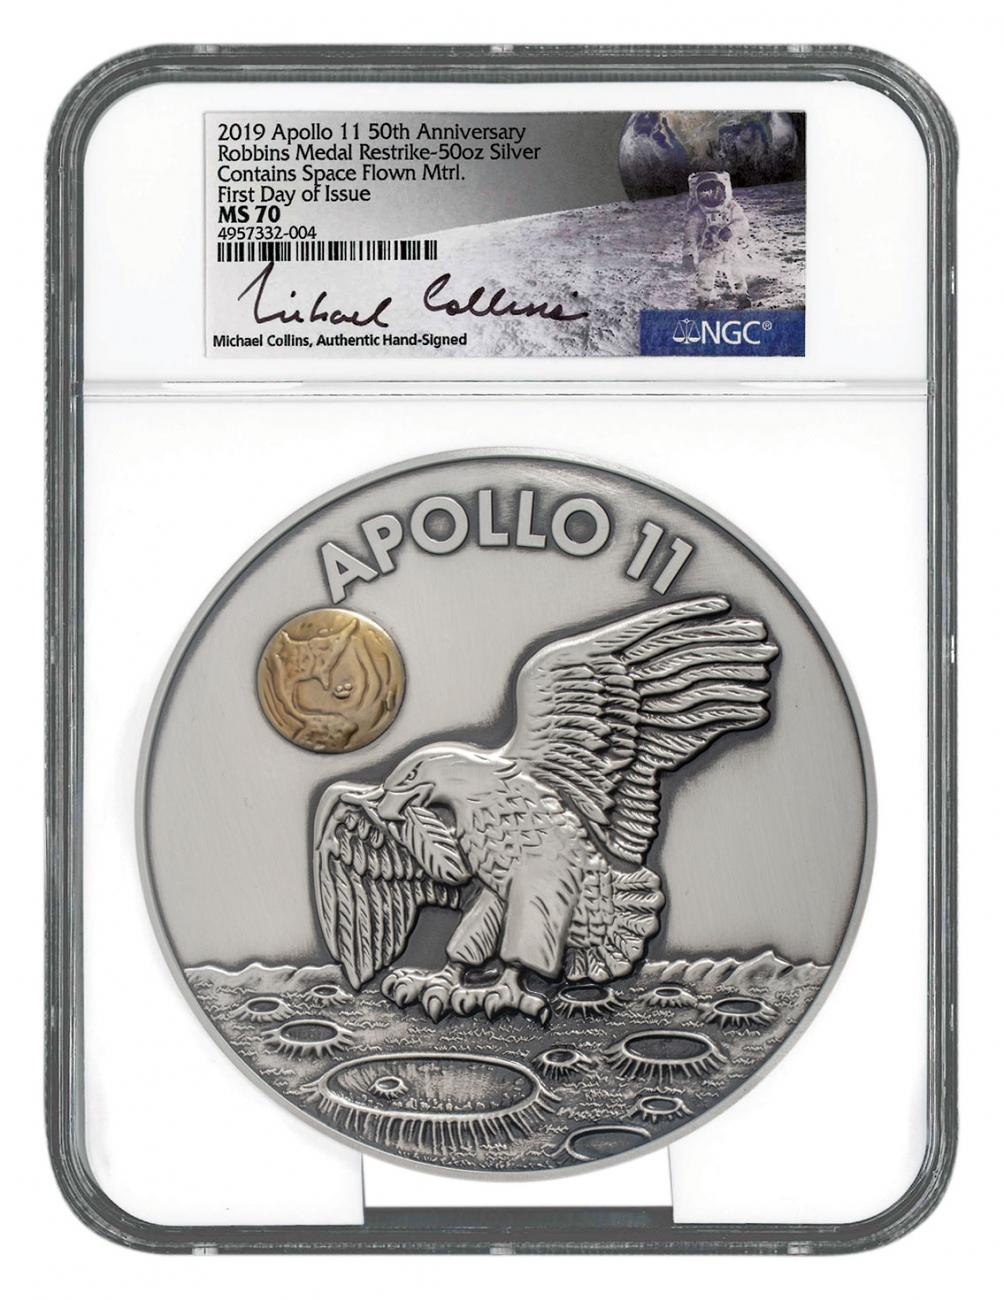 1969-2019 Apollo 11 50th Anniversary Robbins Medals 50 oz Silver Medal with Space-Flown Alloy Scarce and Unique Coin Division NGC MS70 FDI Michael Collins Signed Label